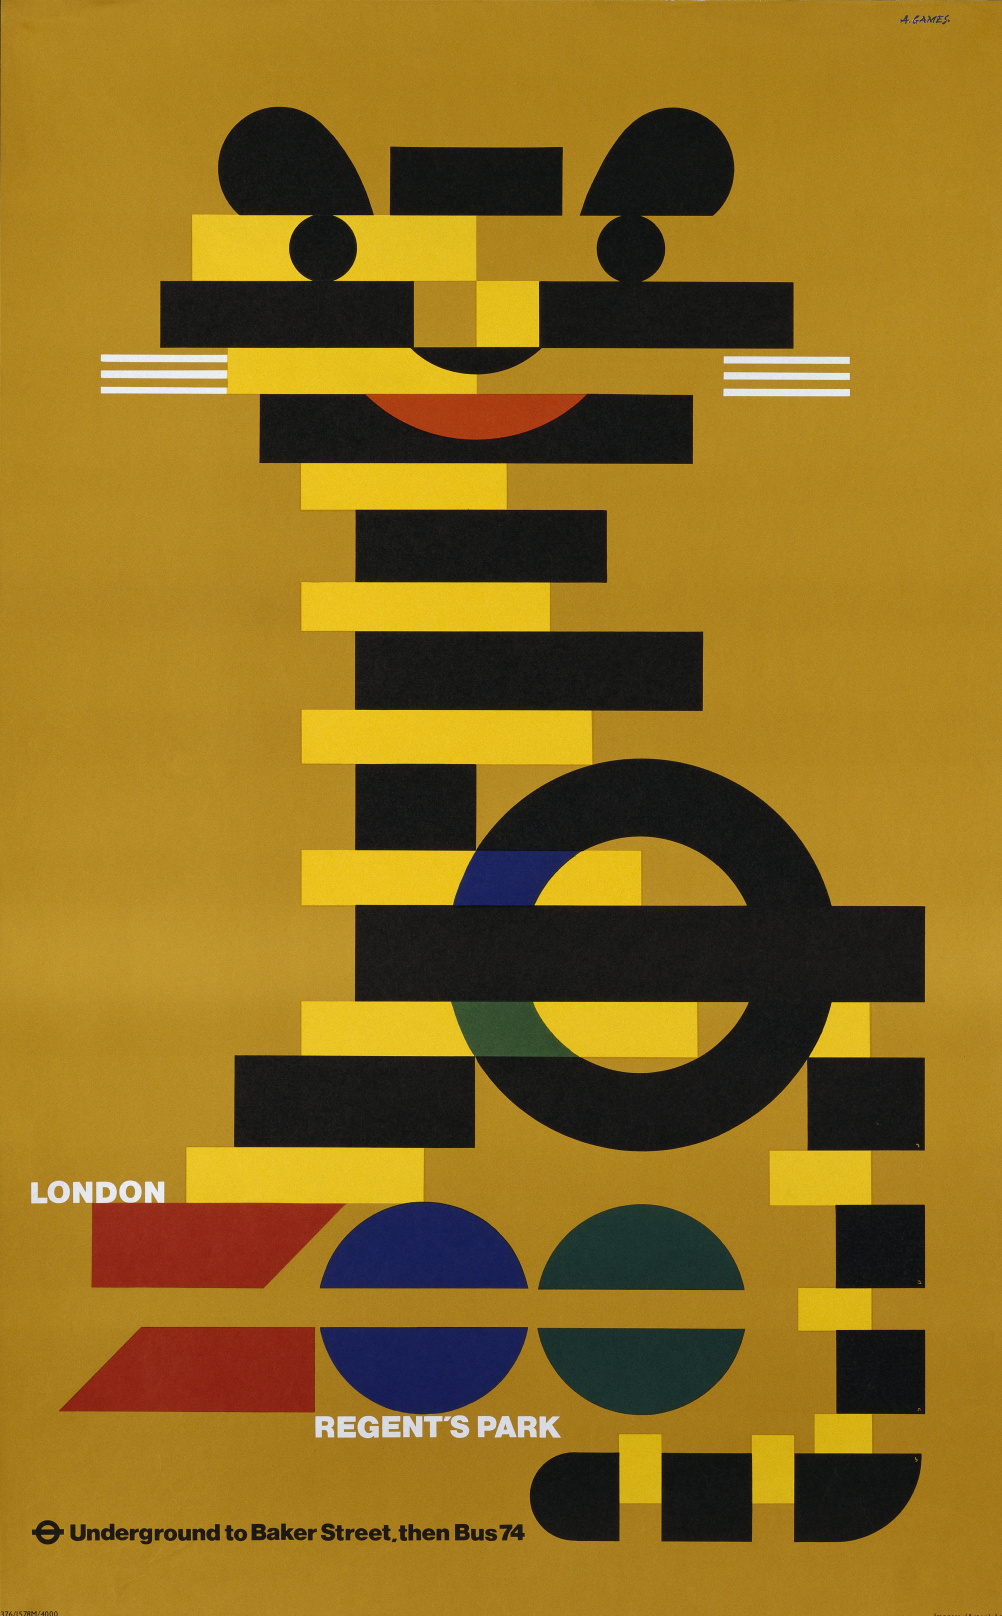 London Transport: London Zoo, 1976 Abram Games